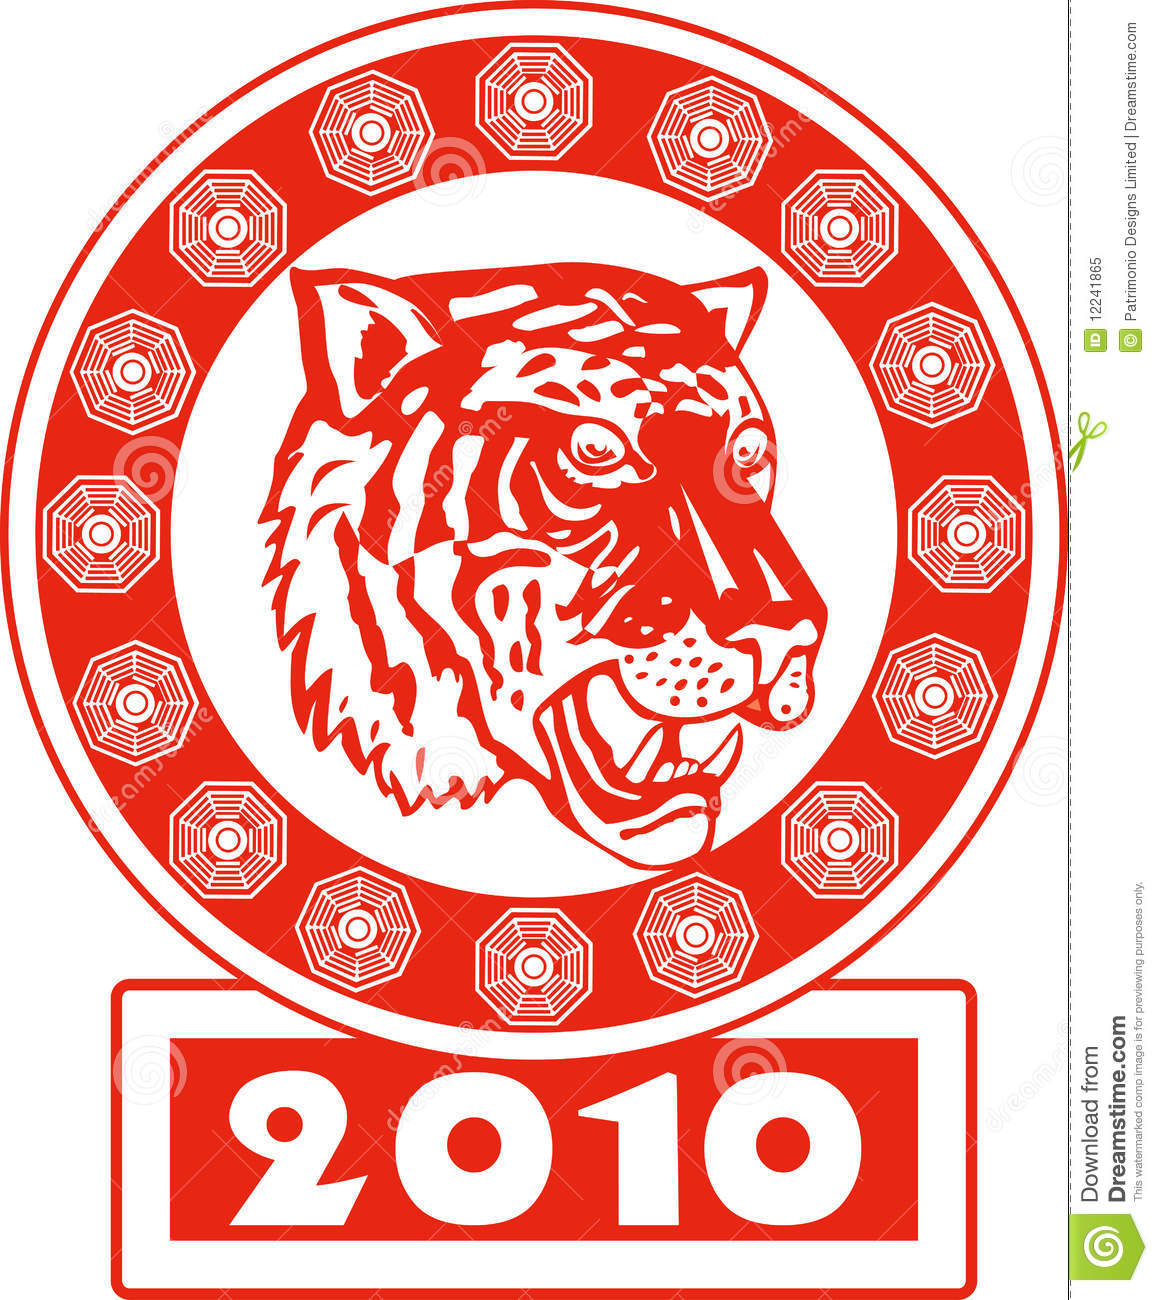 Illustration of the chinese new year 2010 year of the tiger